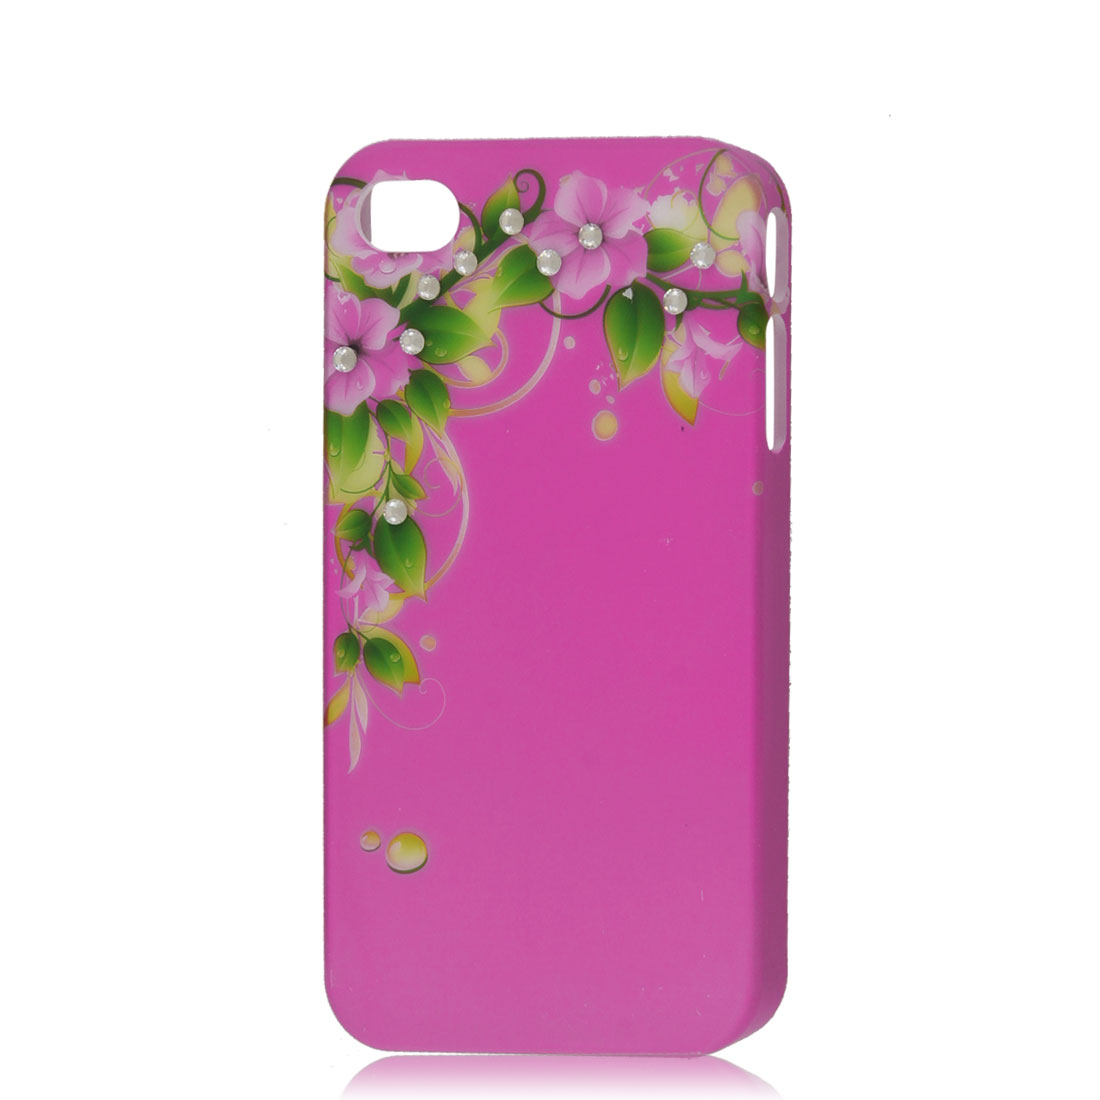 Fuchsia Glitter Rhinestone Flower Hard Back Case Cover Protector for iPhone 4G